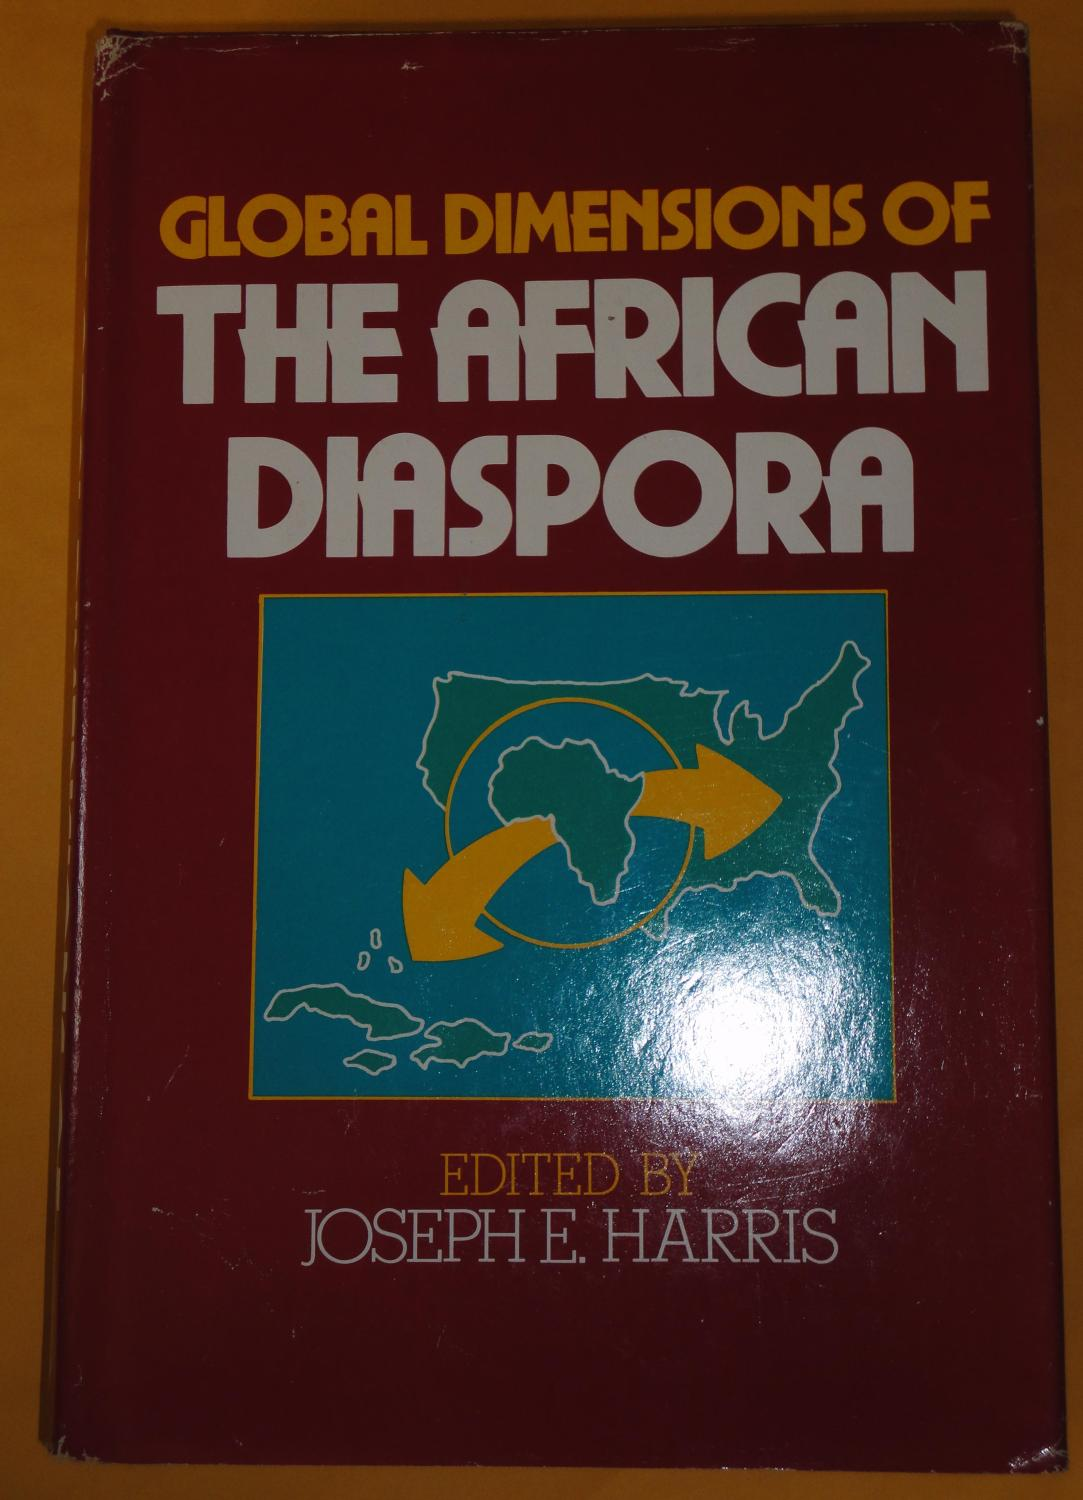 GLOBAL DIMENSIONS OF THE AFRICAN DIASPORA: Harris, Joseph E. , edited by